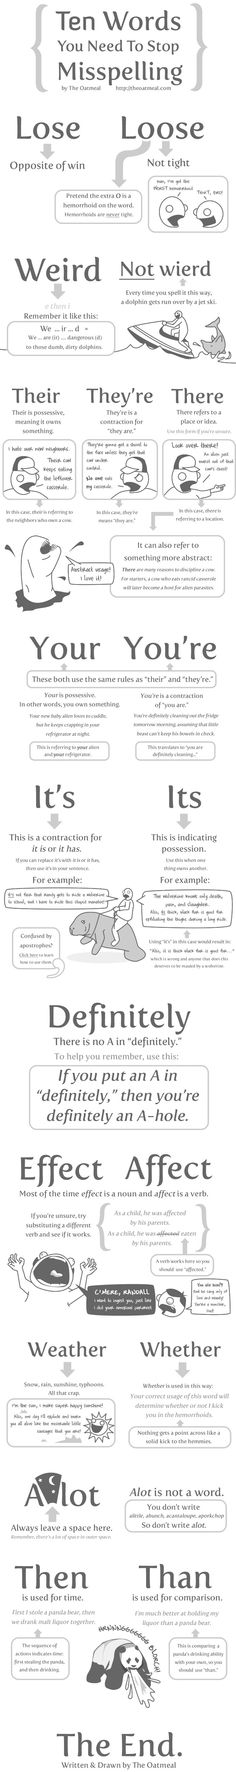 10 Words You Need To Stop Misspelling - http://uncommonchick.com/10-words-you-need-to-stop-misspelling-infographic